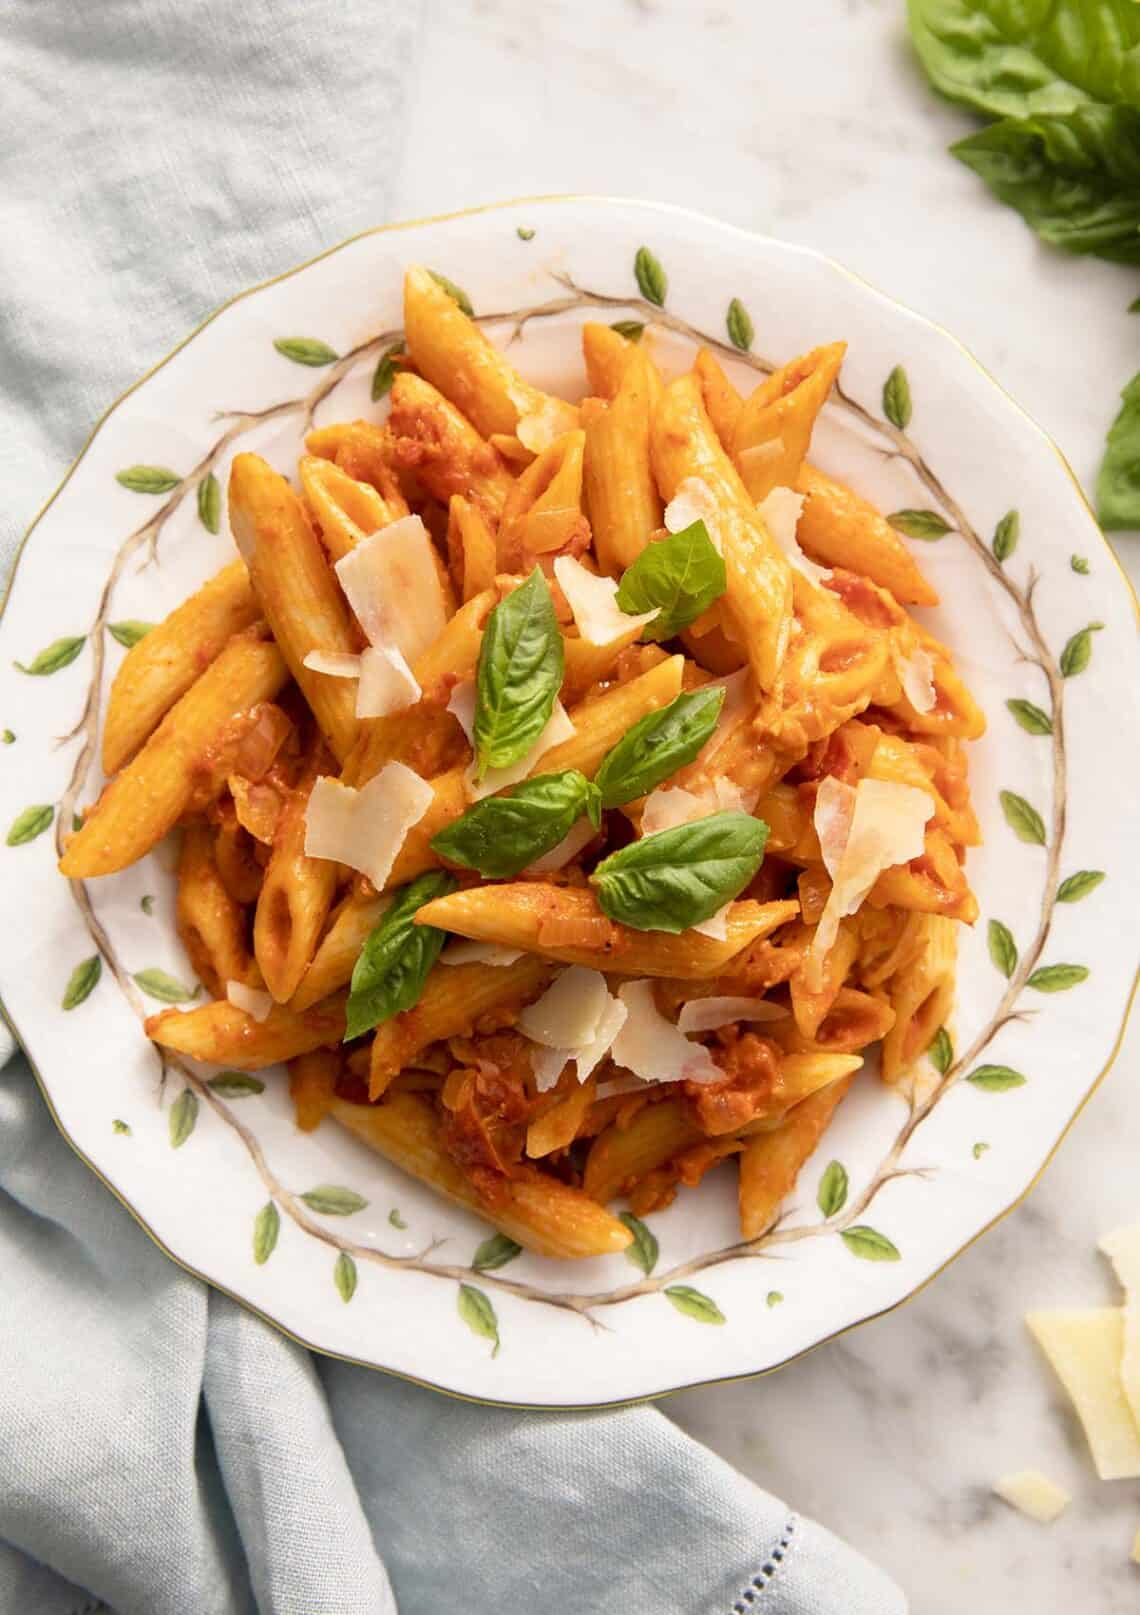 A portion of penne alla vodka on a plate.